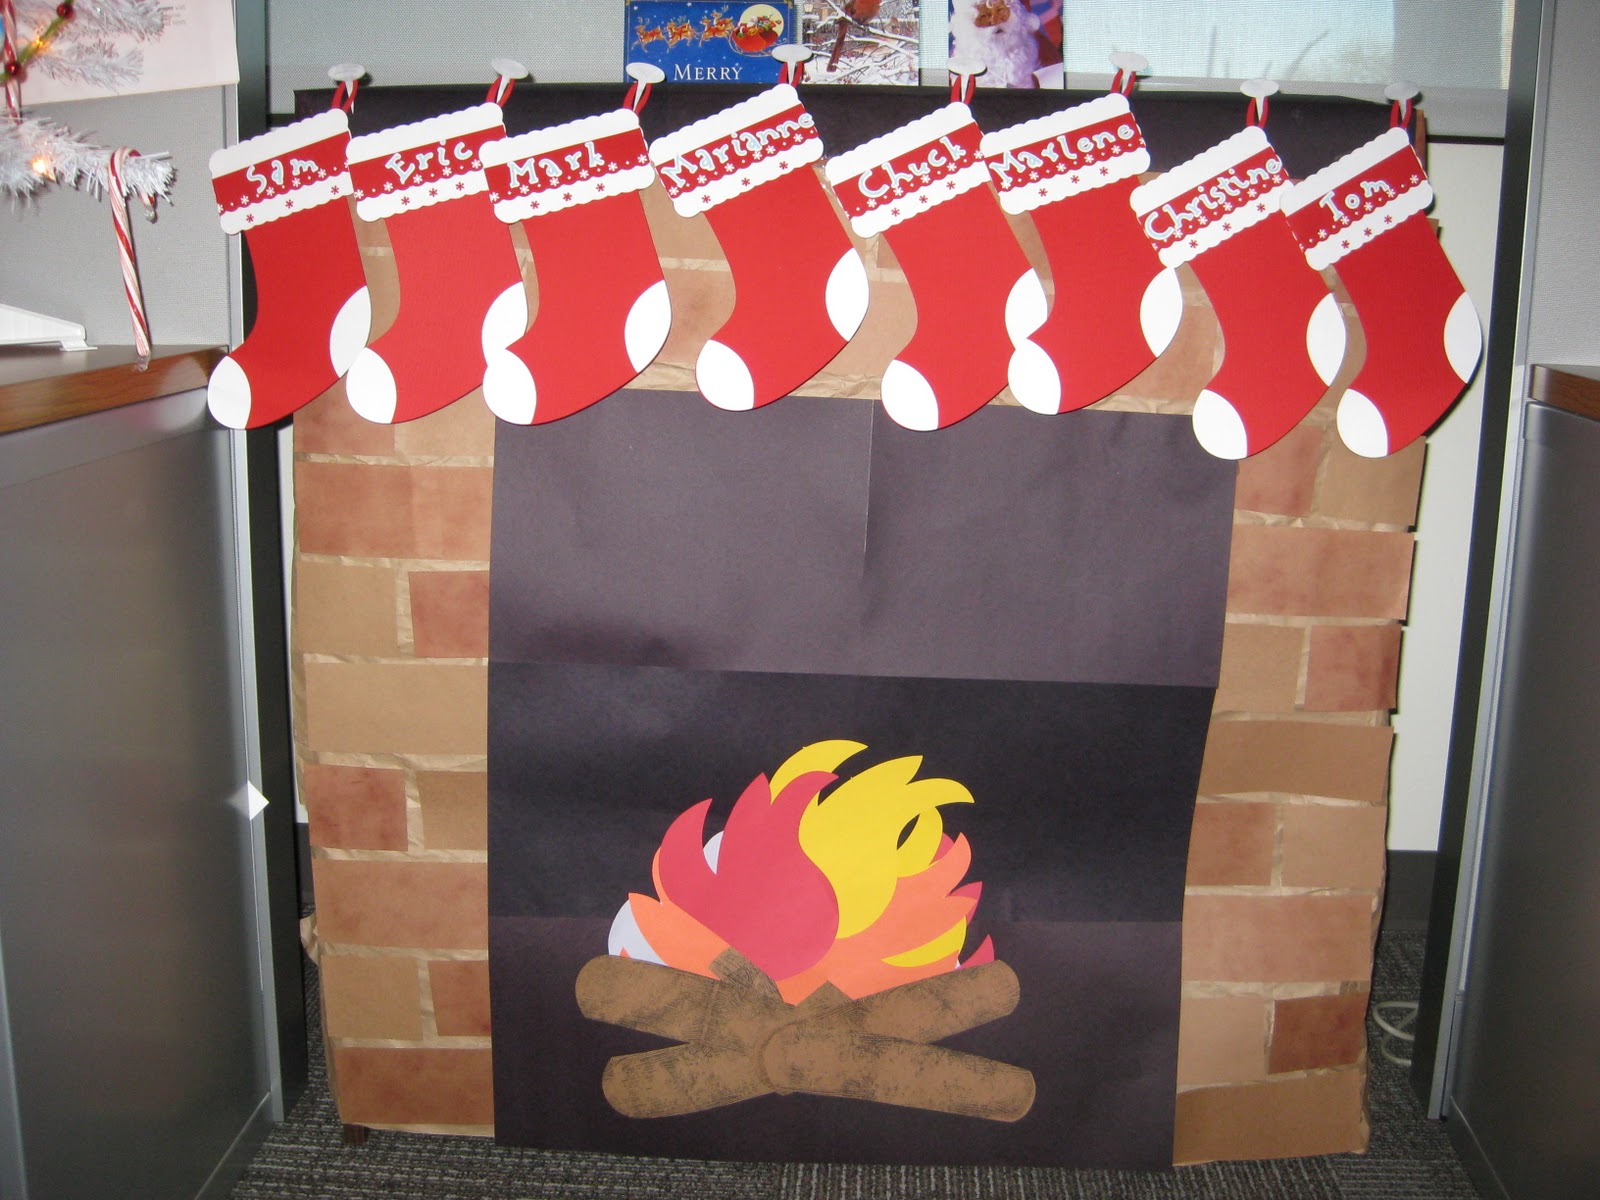 How To Make A Paper Fireplace For Christmas Out Of